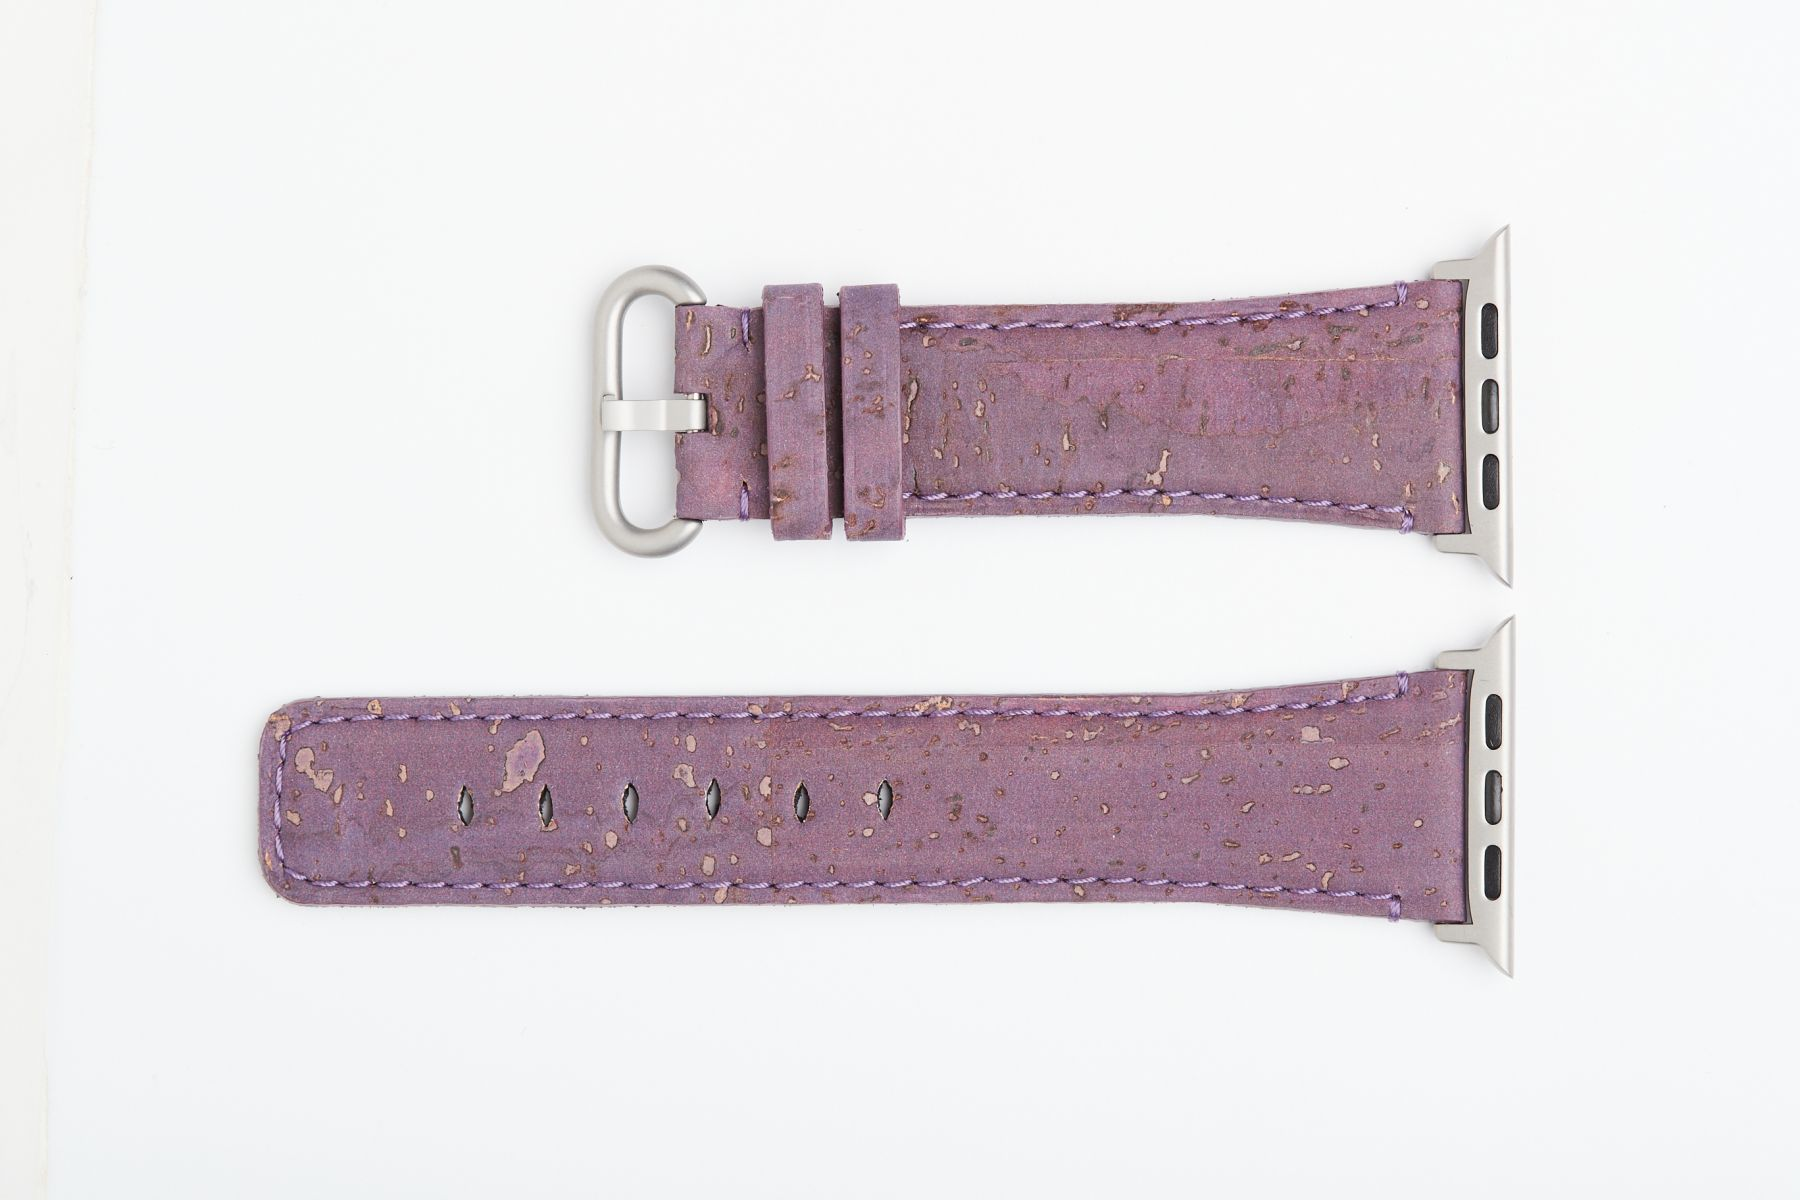 Violet Pear Natural Cork strap 24mm for 44mm, 42mm case (Apple Watch All Series). Vegan style.